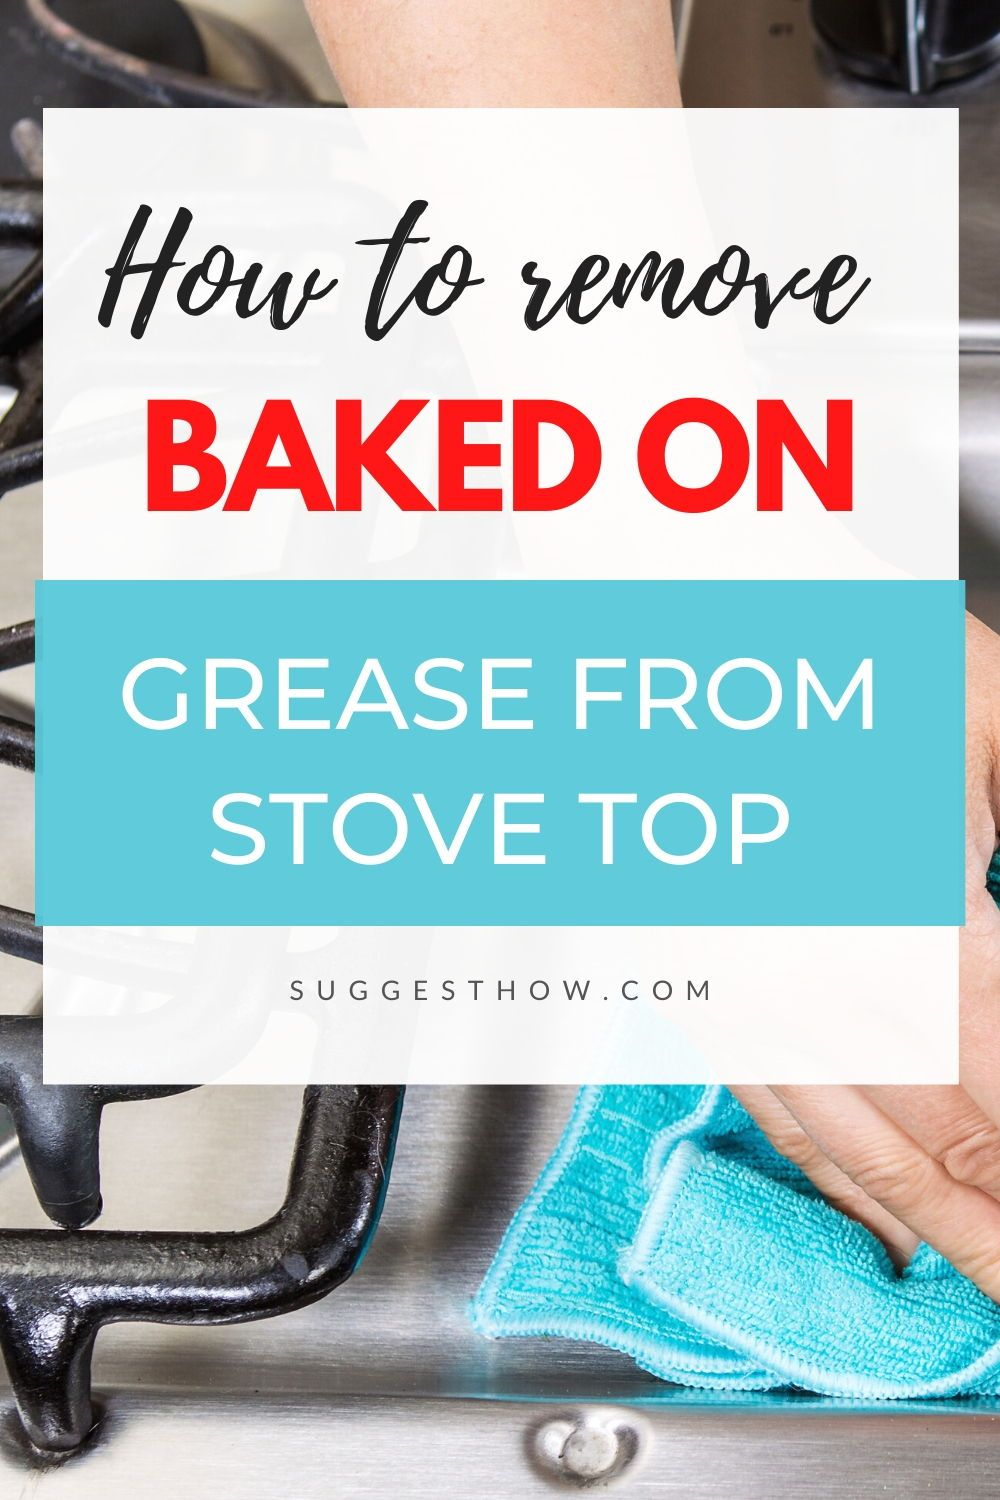 Best Cleaner For Stove Top Grease: How To Remove Baked On Grease From Stove Top With 5 Easy